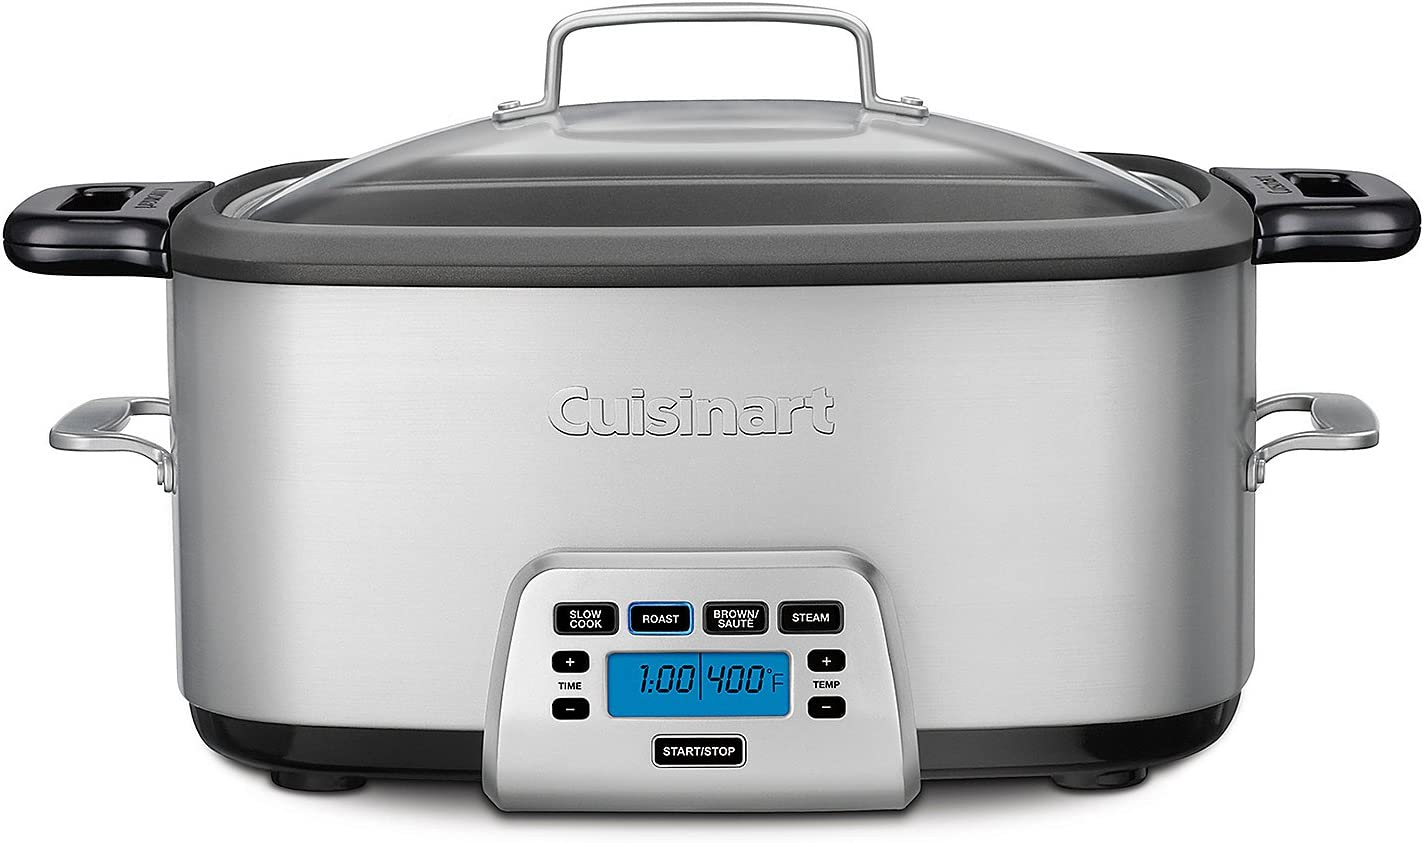 Cuisinart 4-In-1 Cook Central